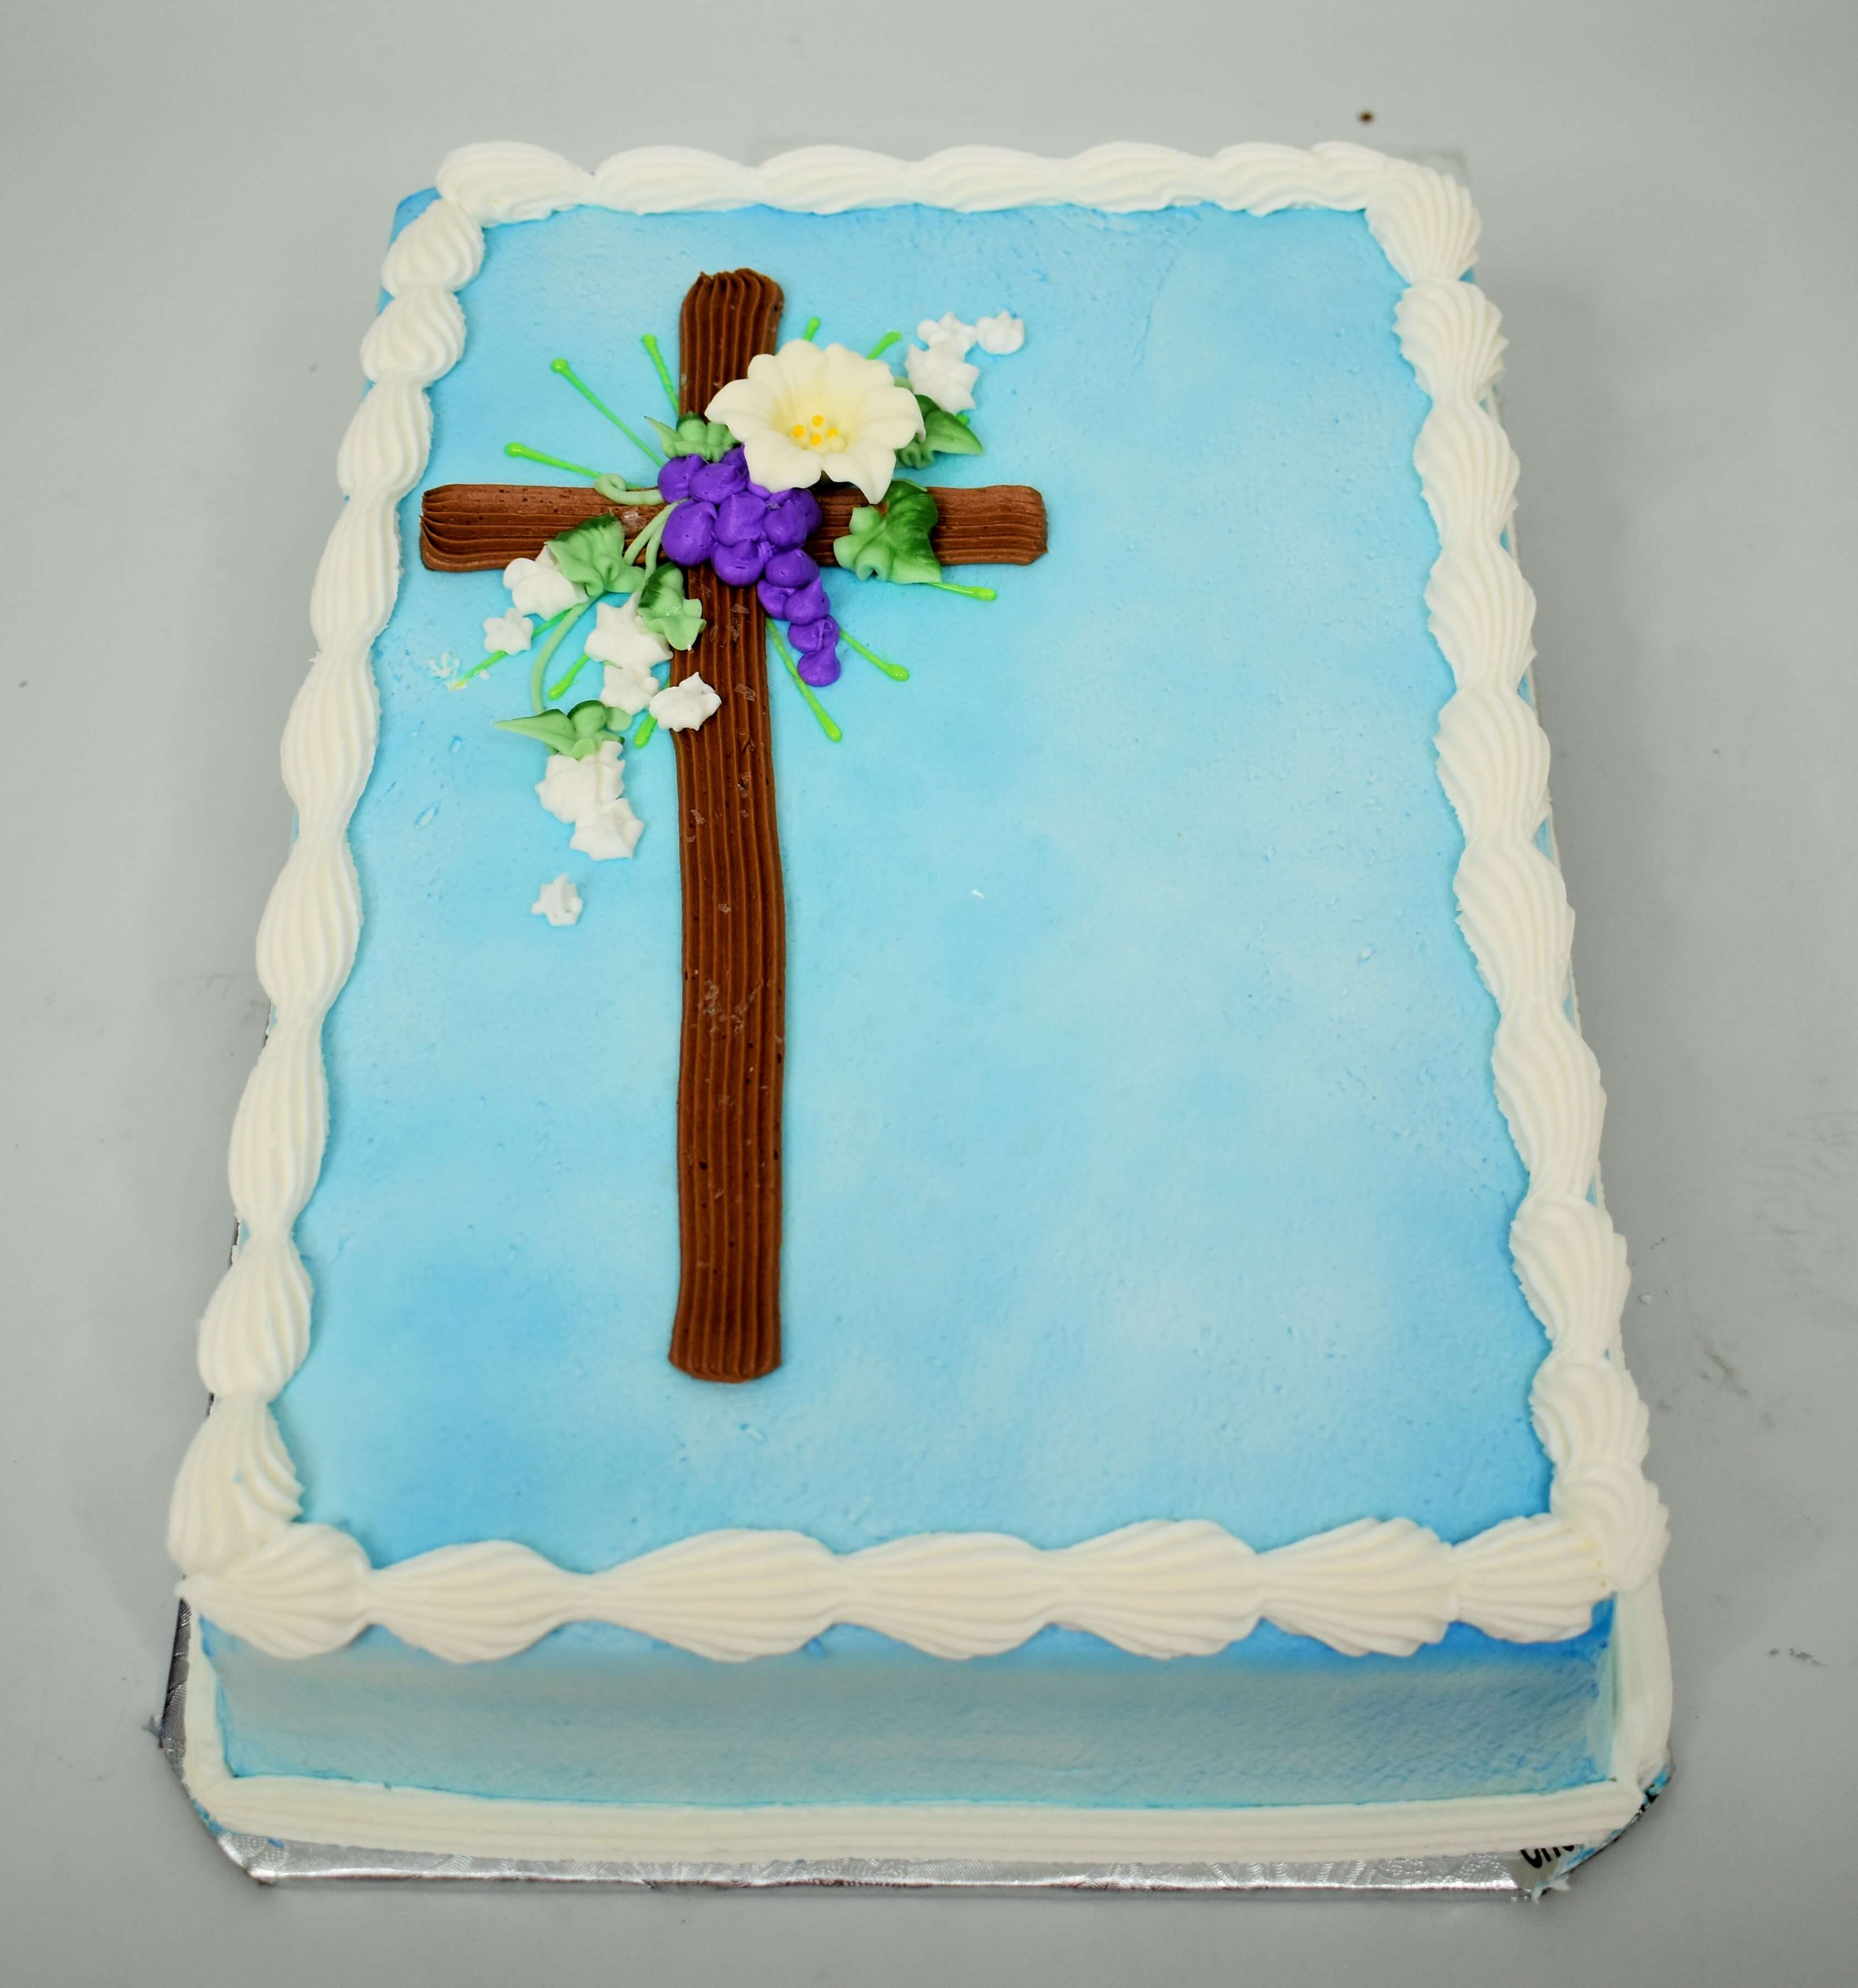 MaArthur's Bakery Custom Cake Sprayed Blue, with Brown Cross, Purple Grapes and Flowers